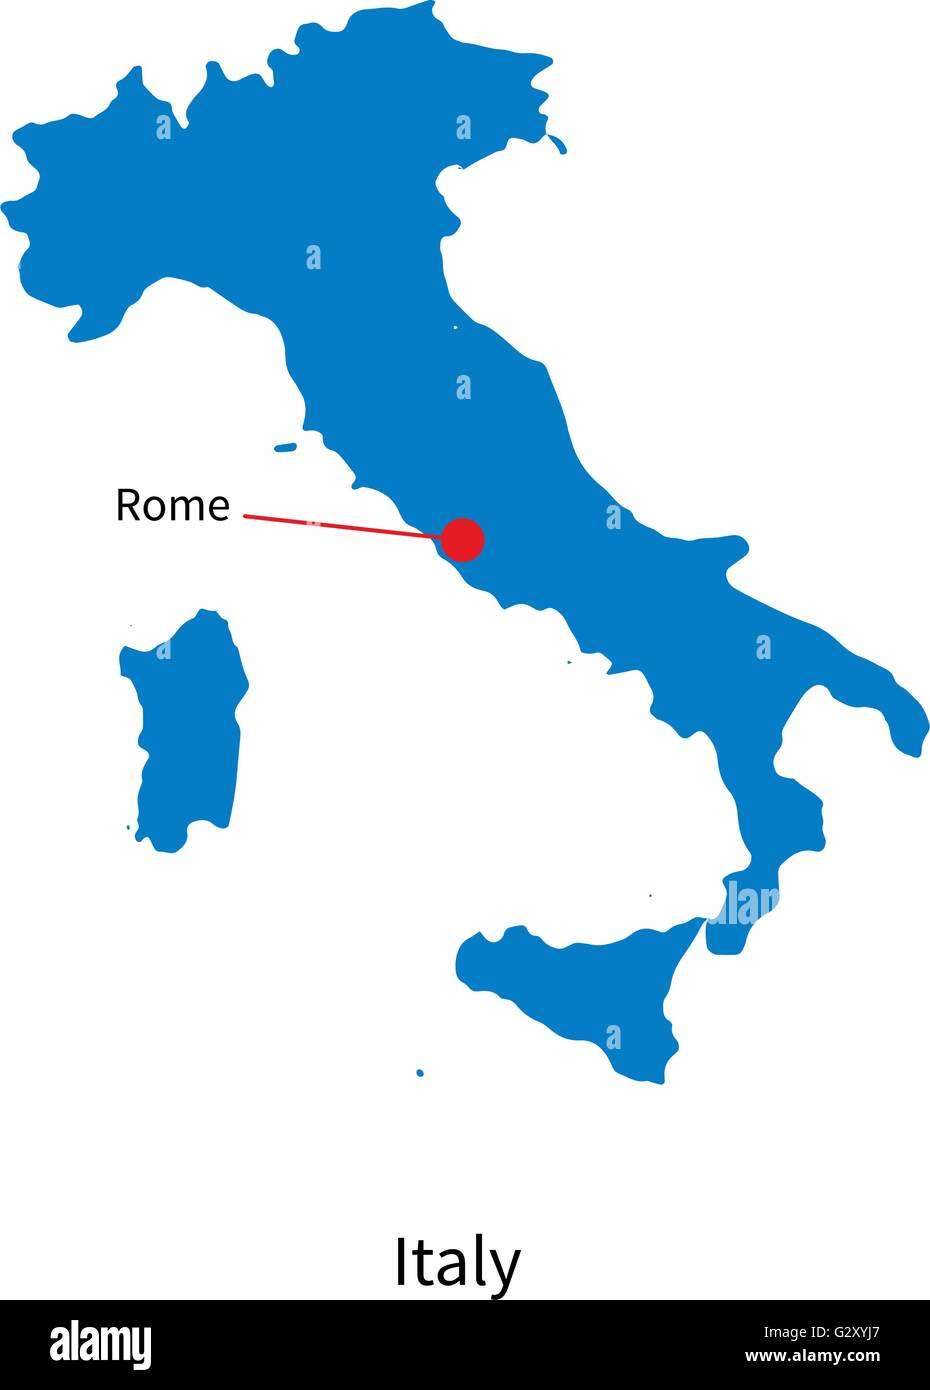 Detailed Vector Map Of Italy And Capital City Rome Stock Vector - Italy capital map